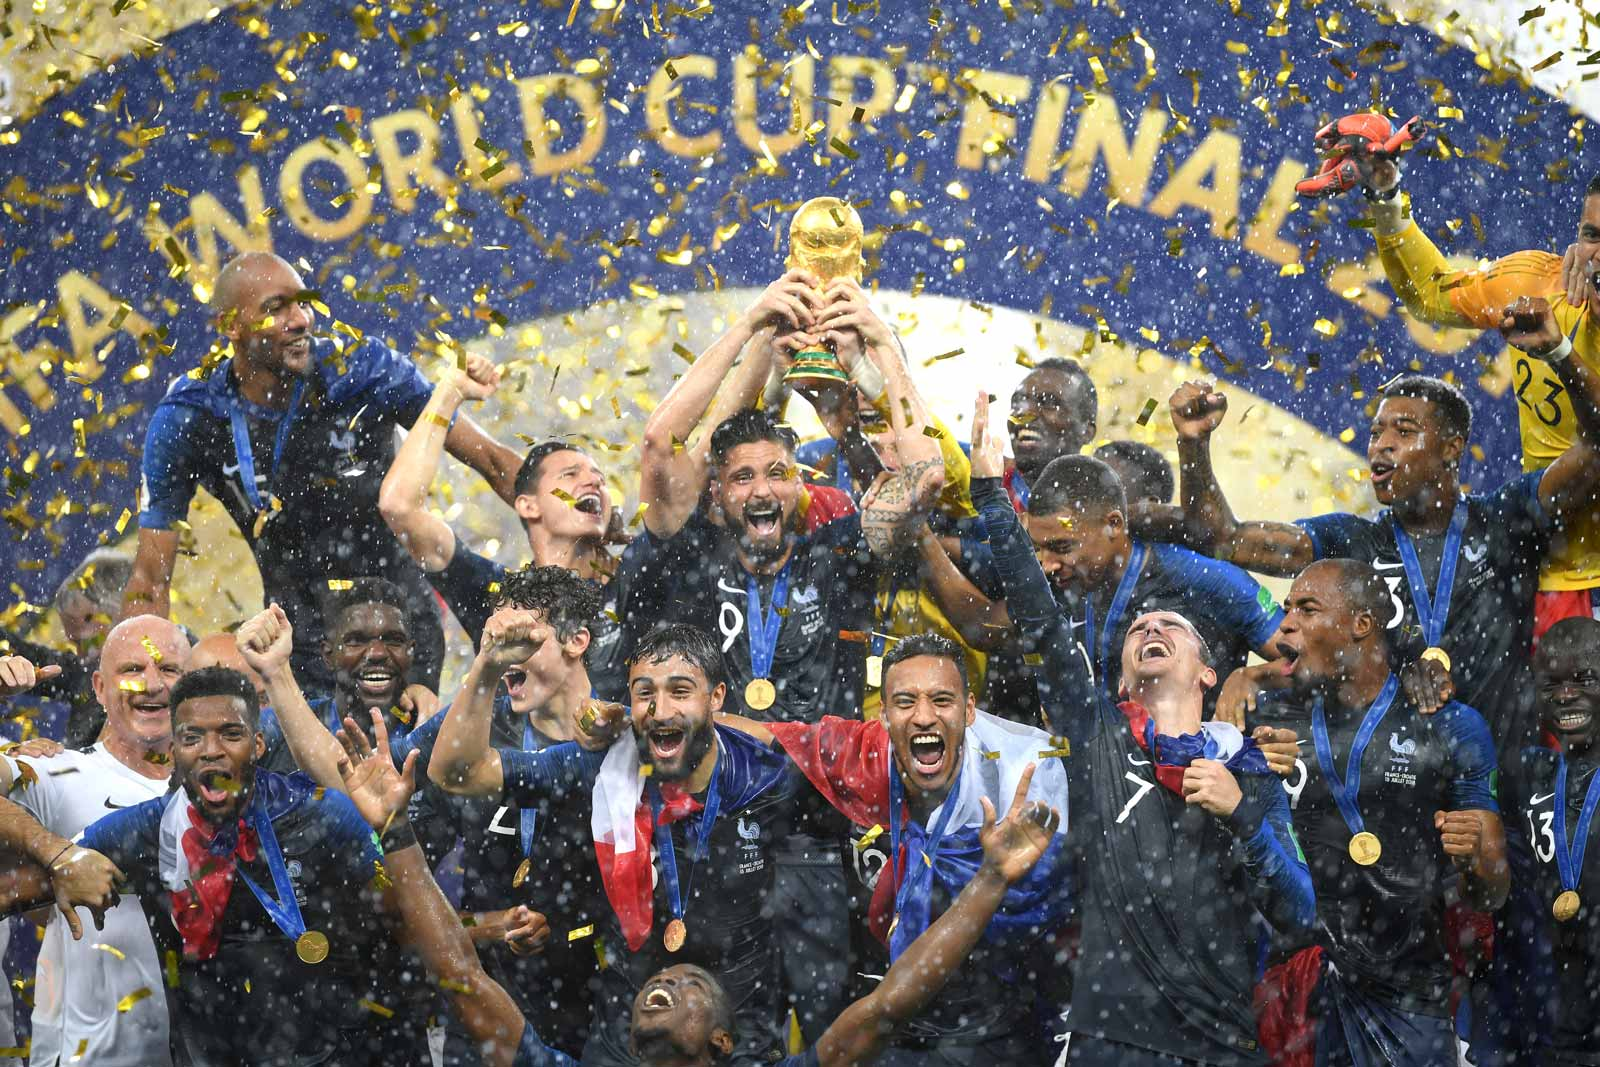 World Cup 2018 - France with the world cup